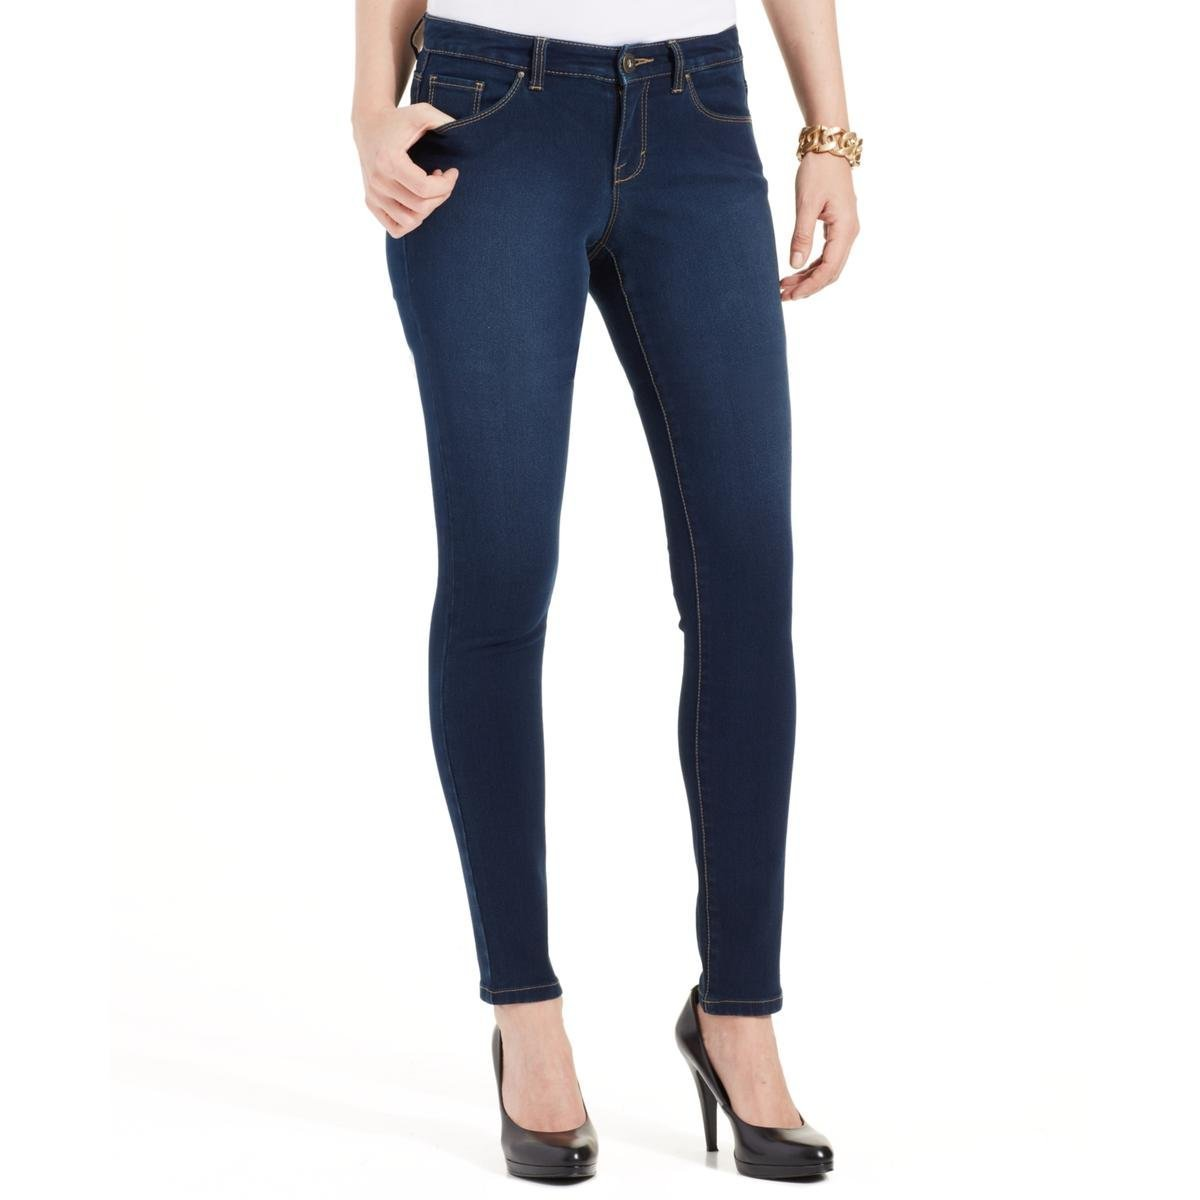 Style & Co.. Womens Petites Curvy Fit Tummy Control Ankle Pants Blue 4P